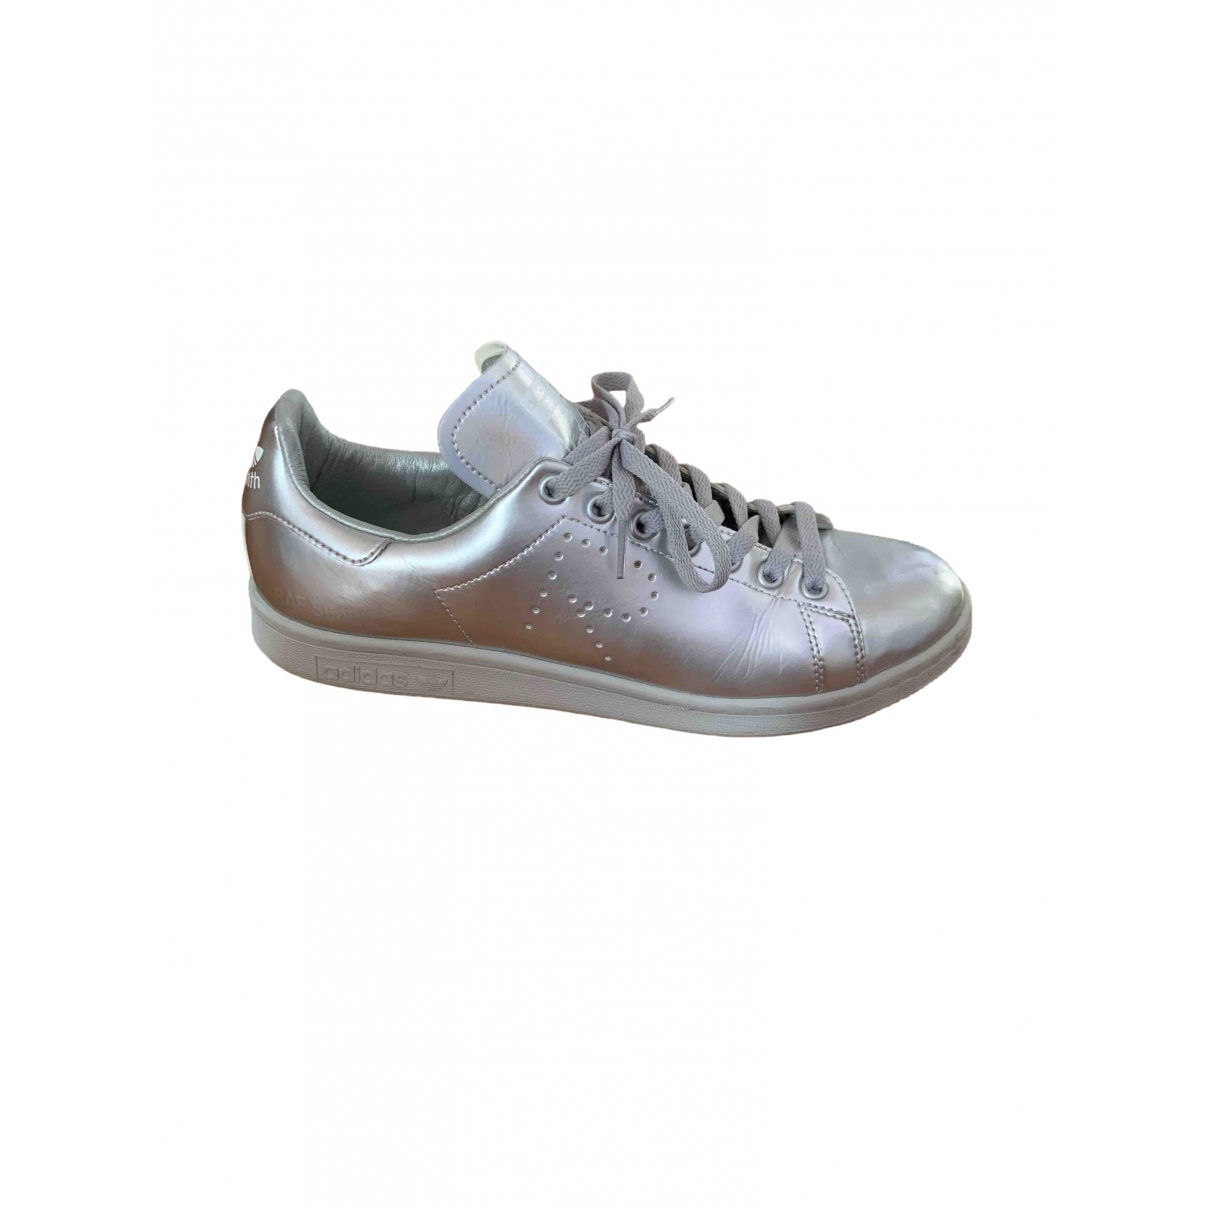 Adidas X Raf Simons Stan Smith Sneakers in  Silber Leder